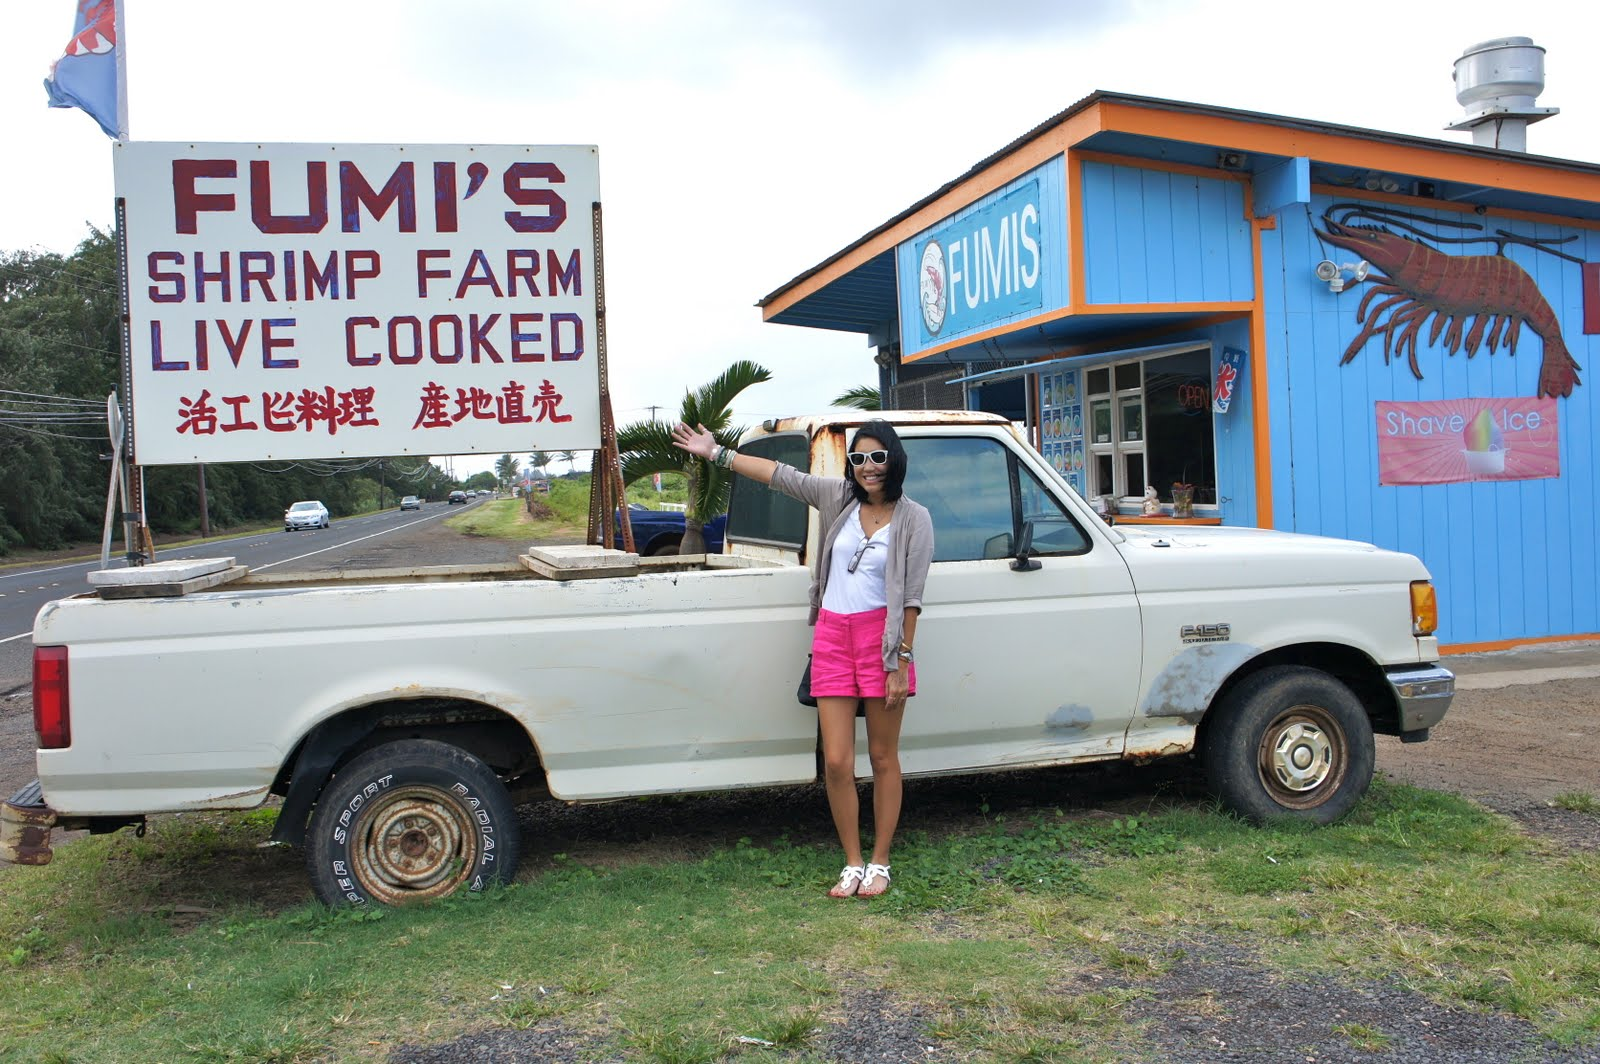 The Fashionably-Forward Foodie: Kahuku Shrimp Truck- Fumi's